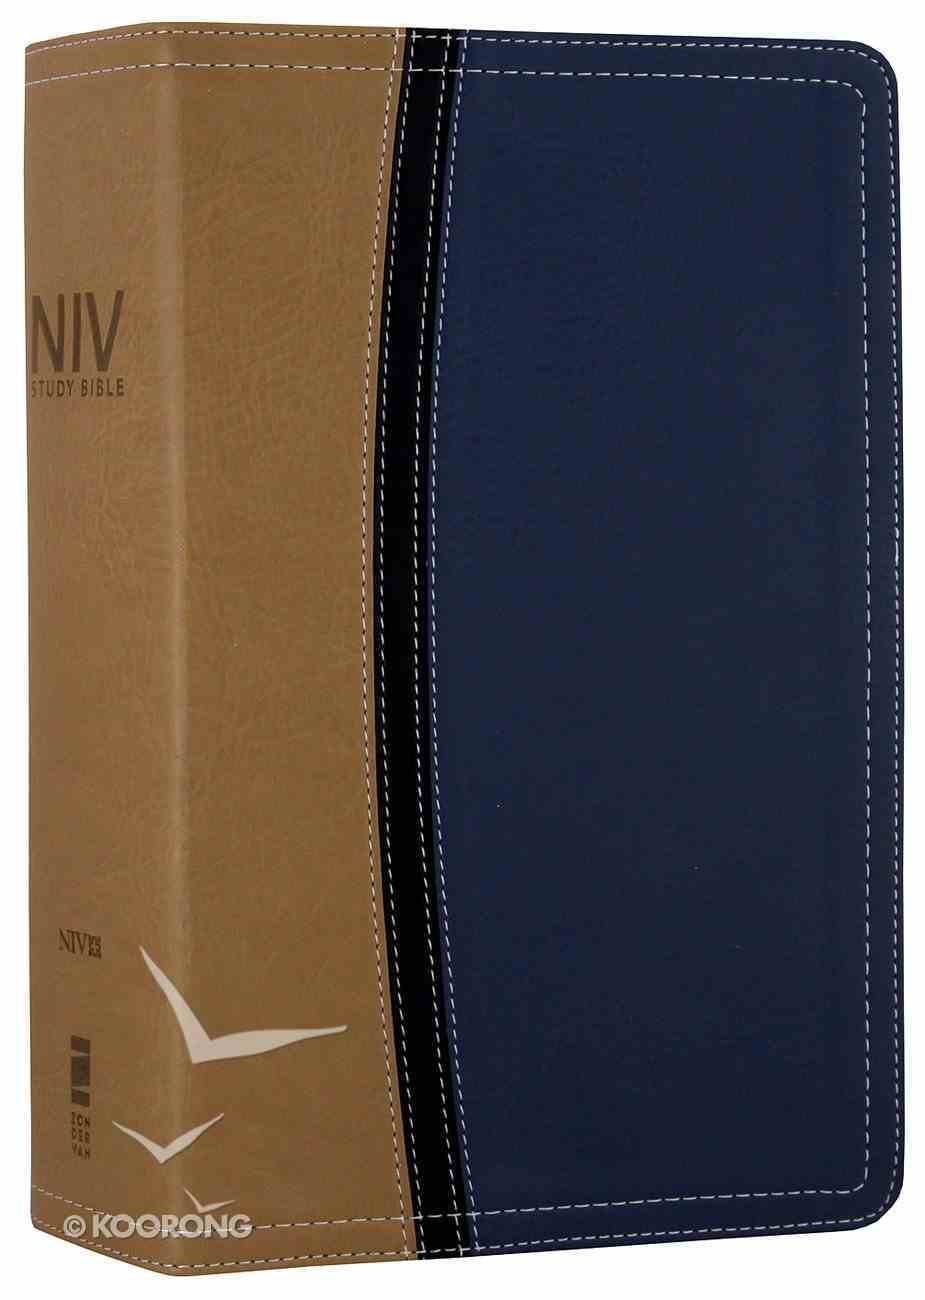 NIV Study Bible Personal Size Tan/Blue (Red Letter Edition) Premium Imitation Leather